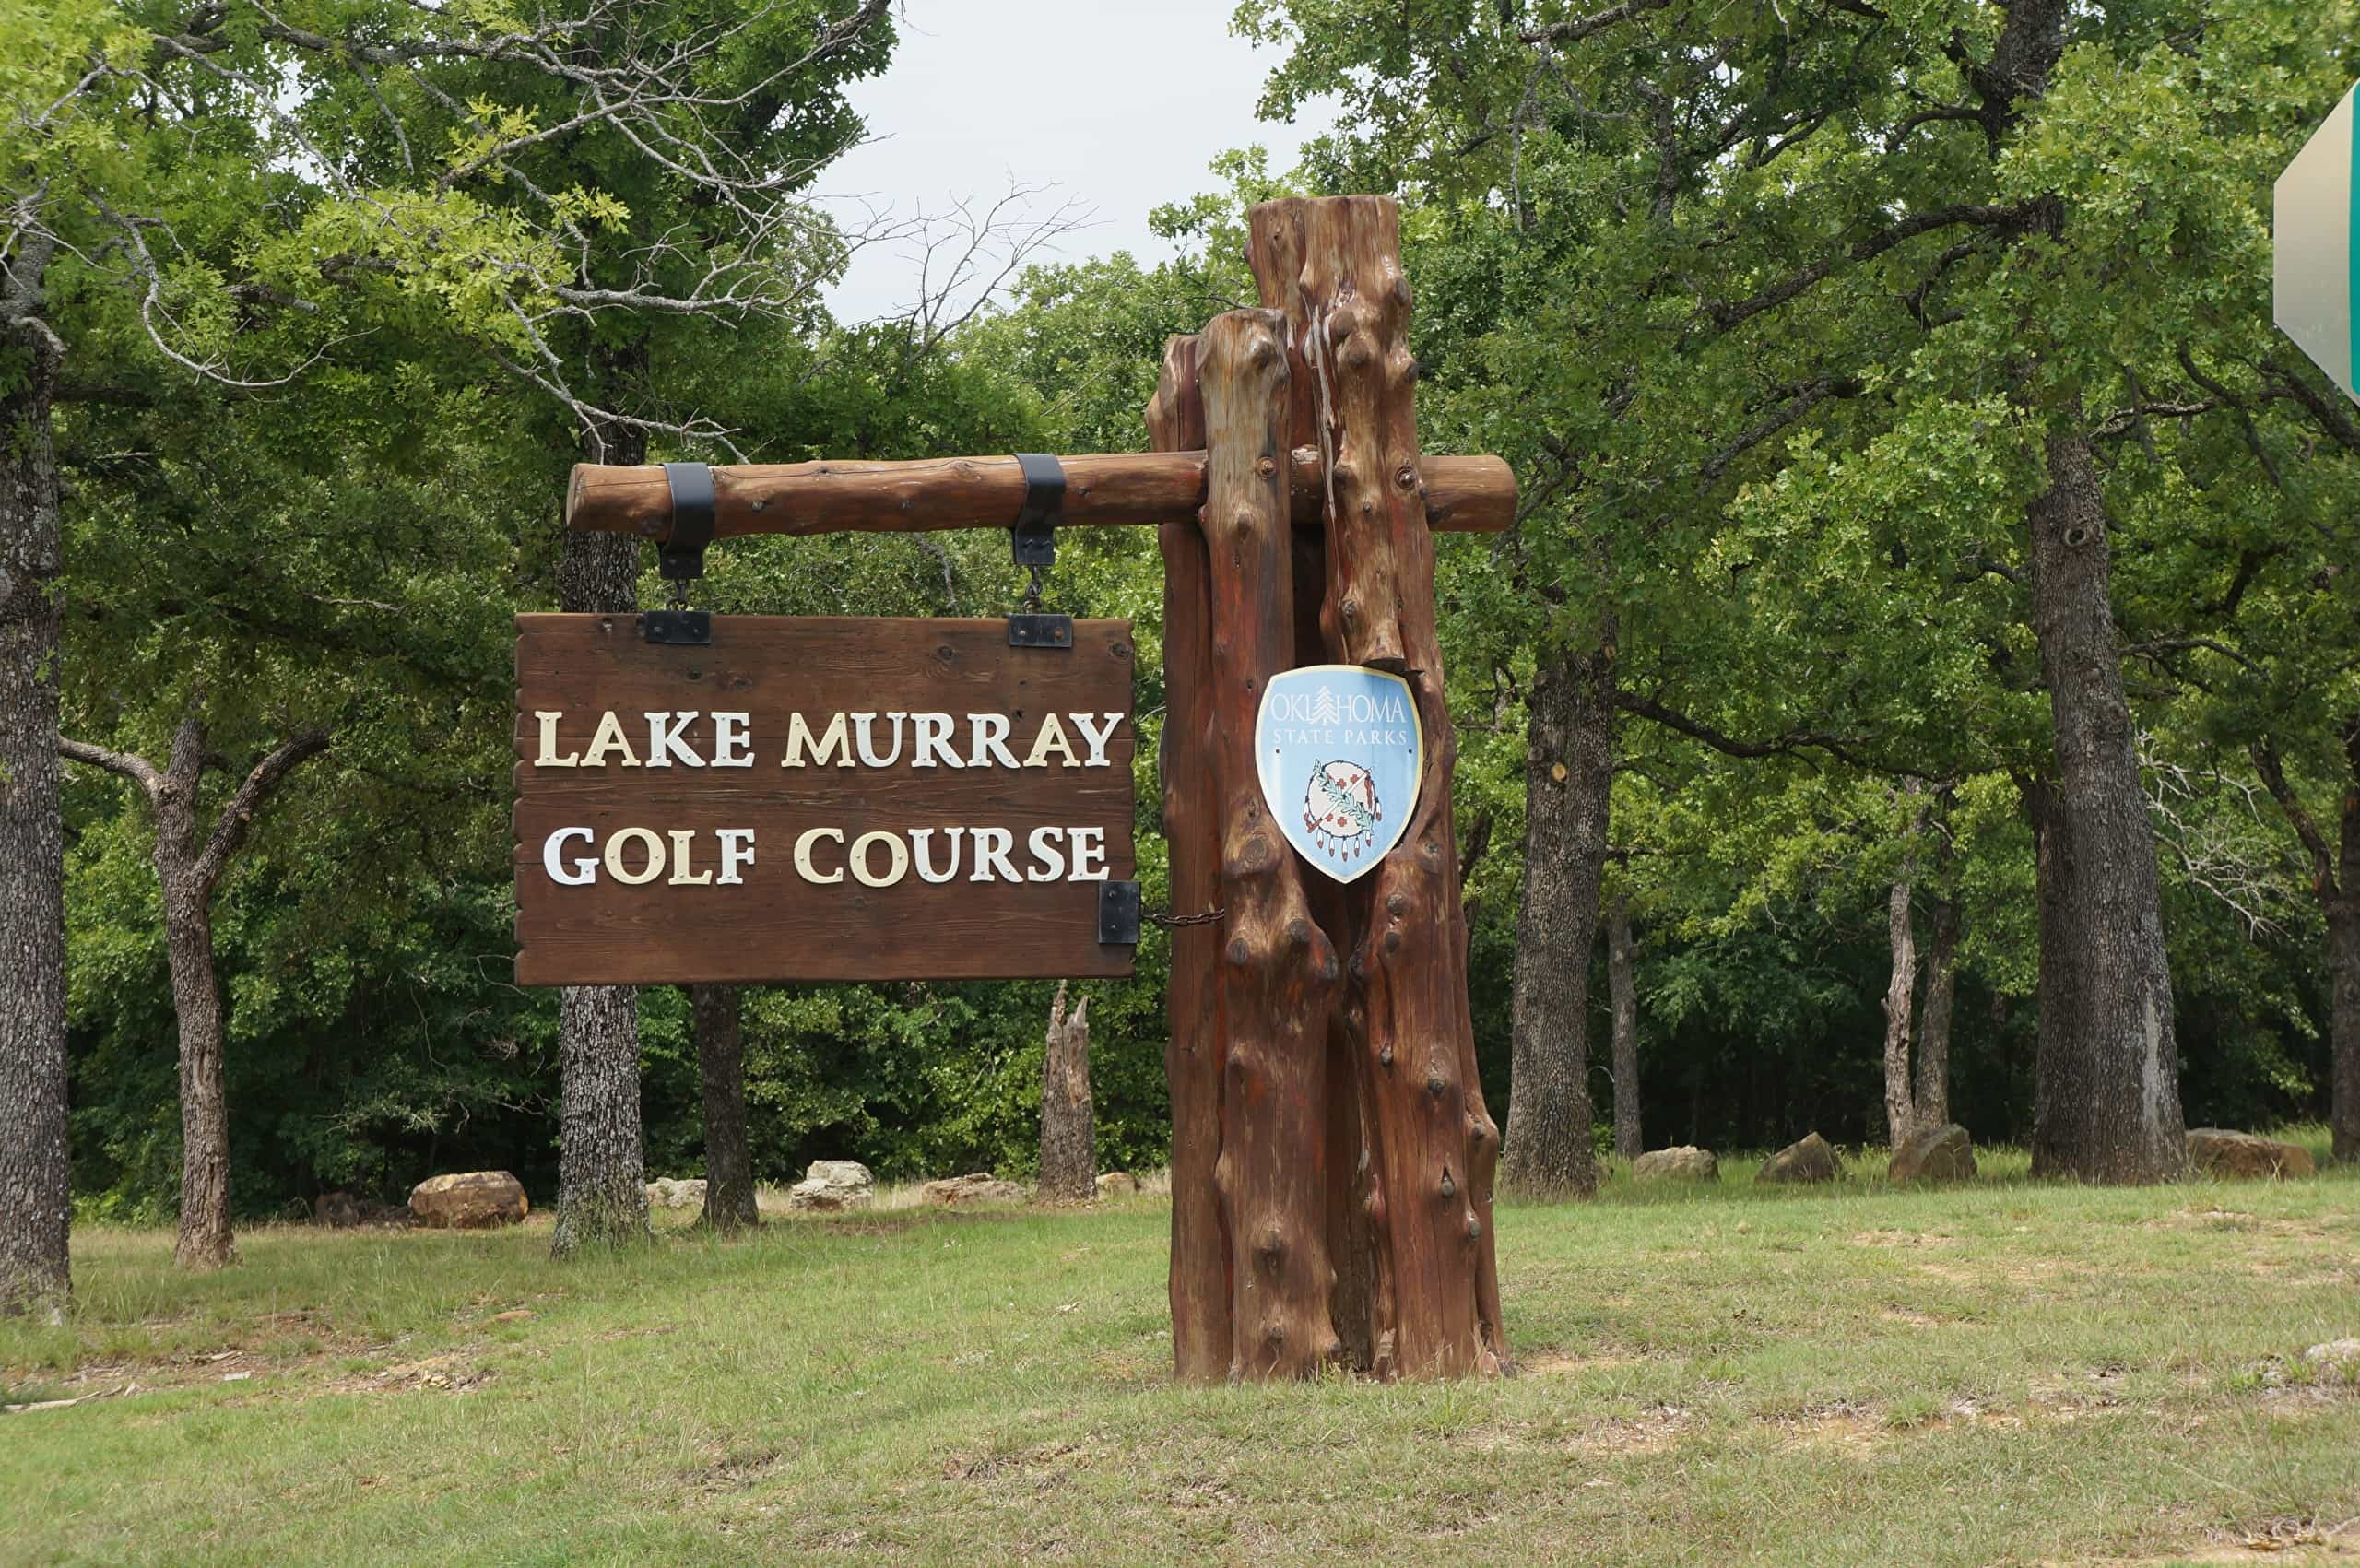 Golf course sign at lake murray in Ardmore, Oklahoma